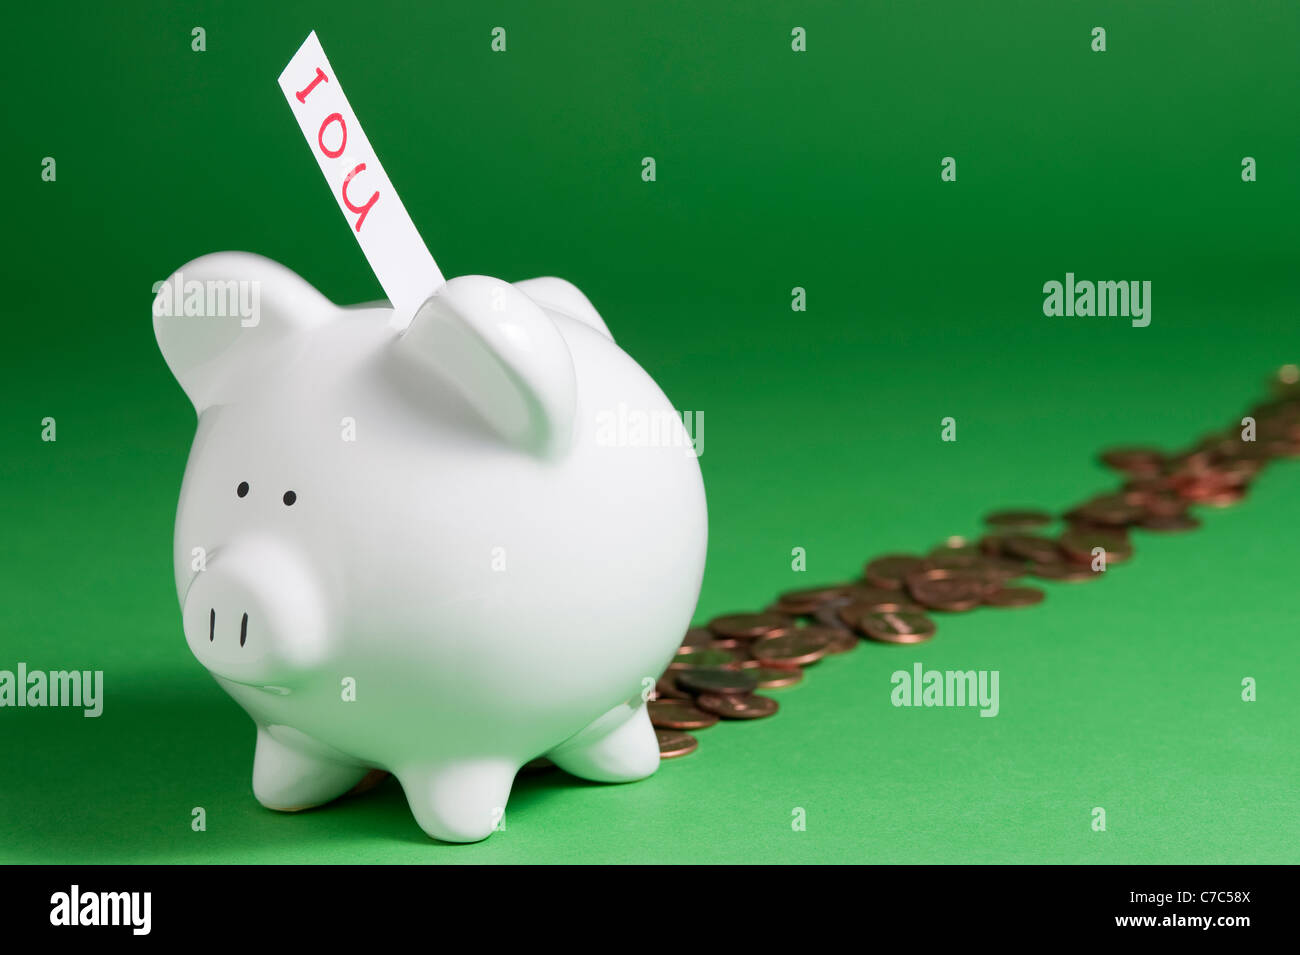 Group of pigs with IOU's coming out of coin slots and pennies coming out back - Stock Image